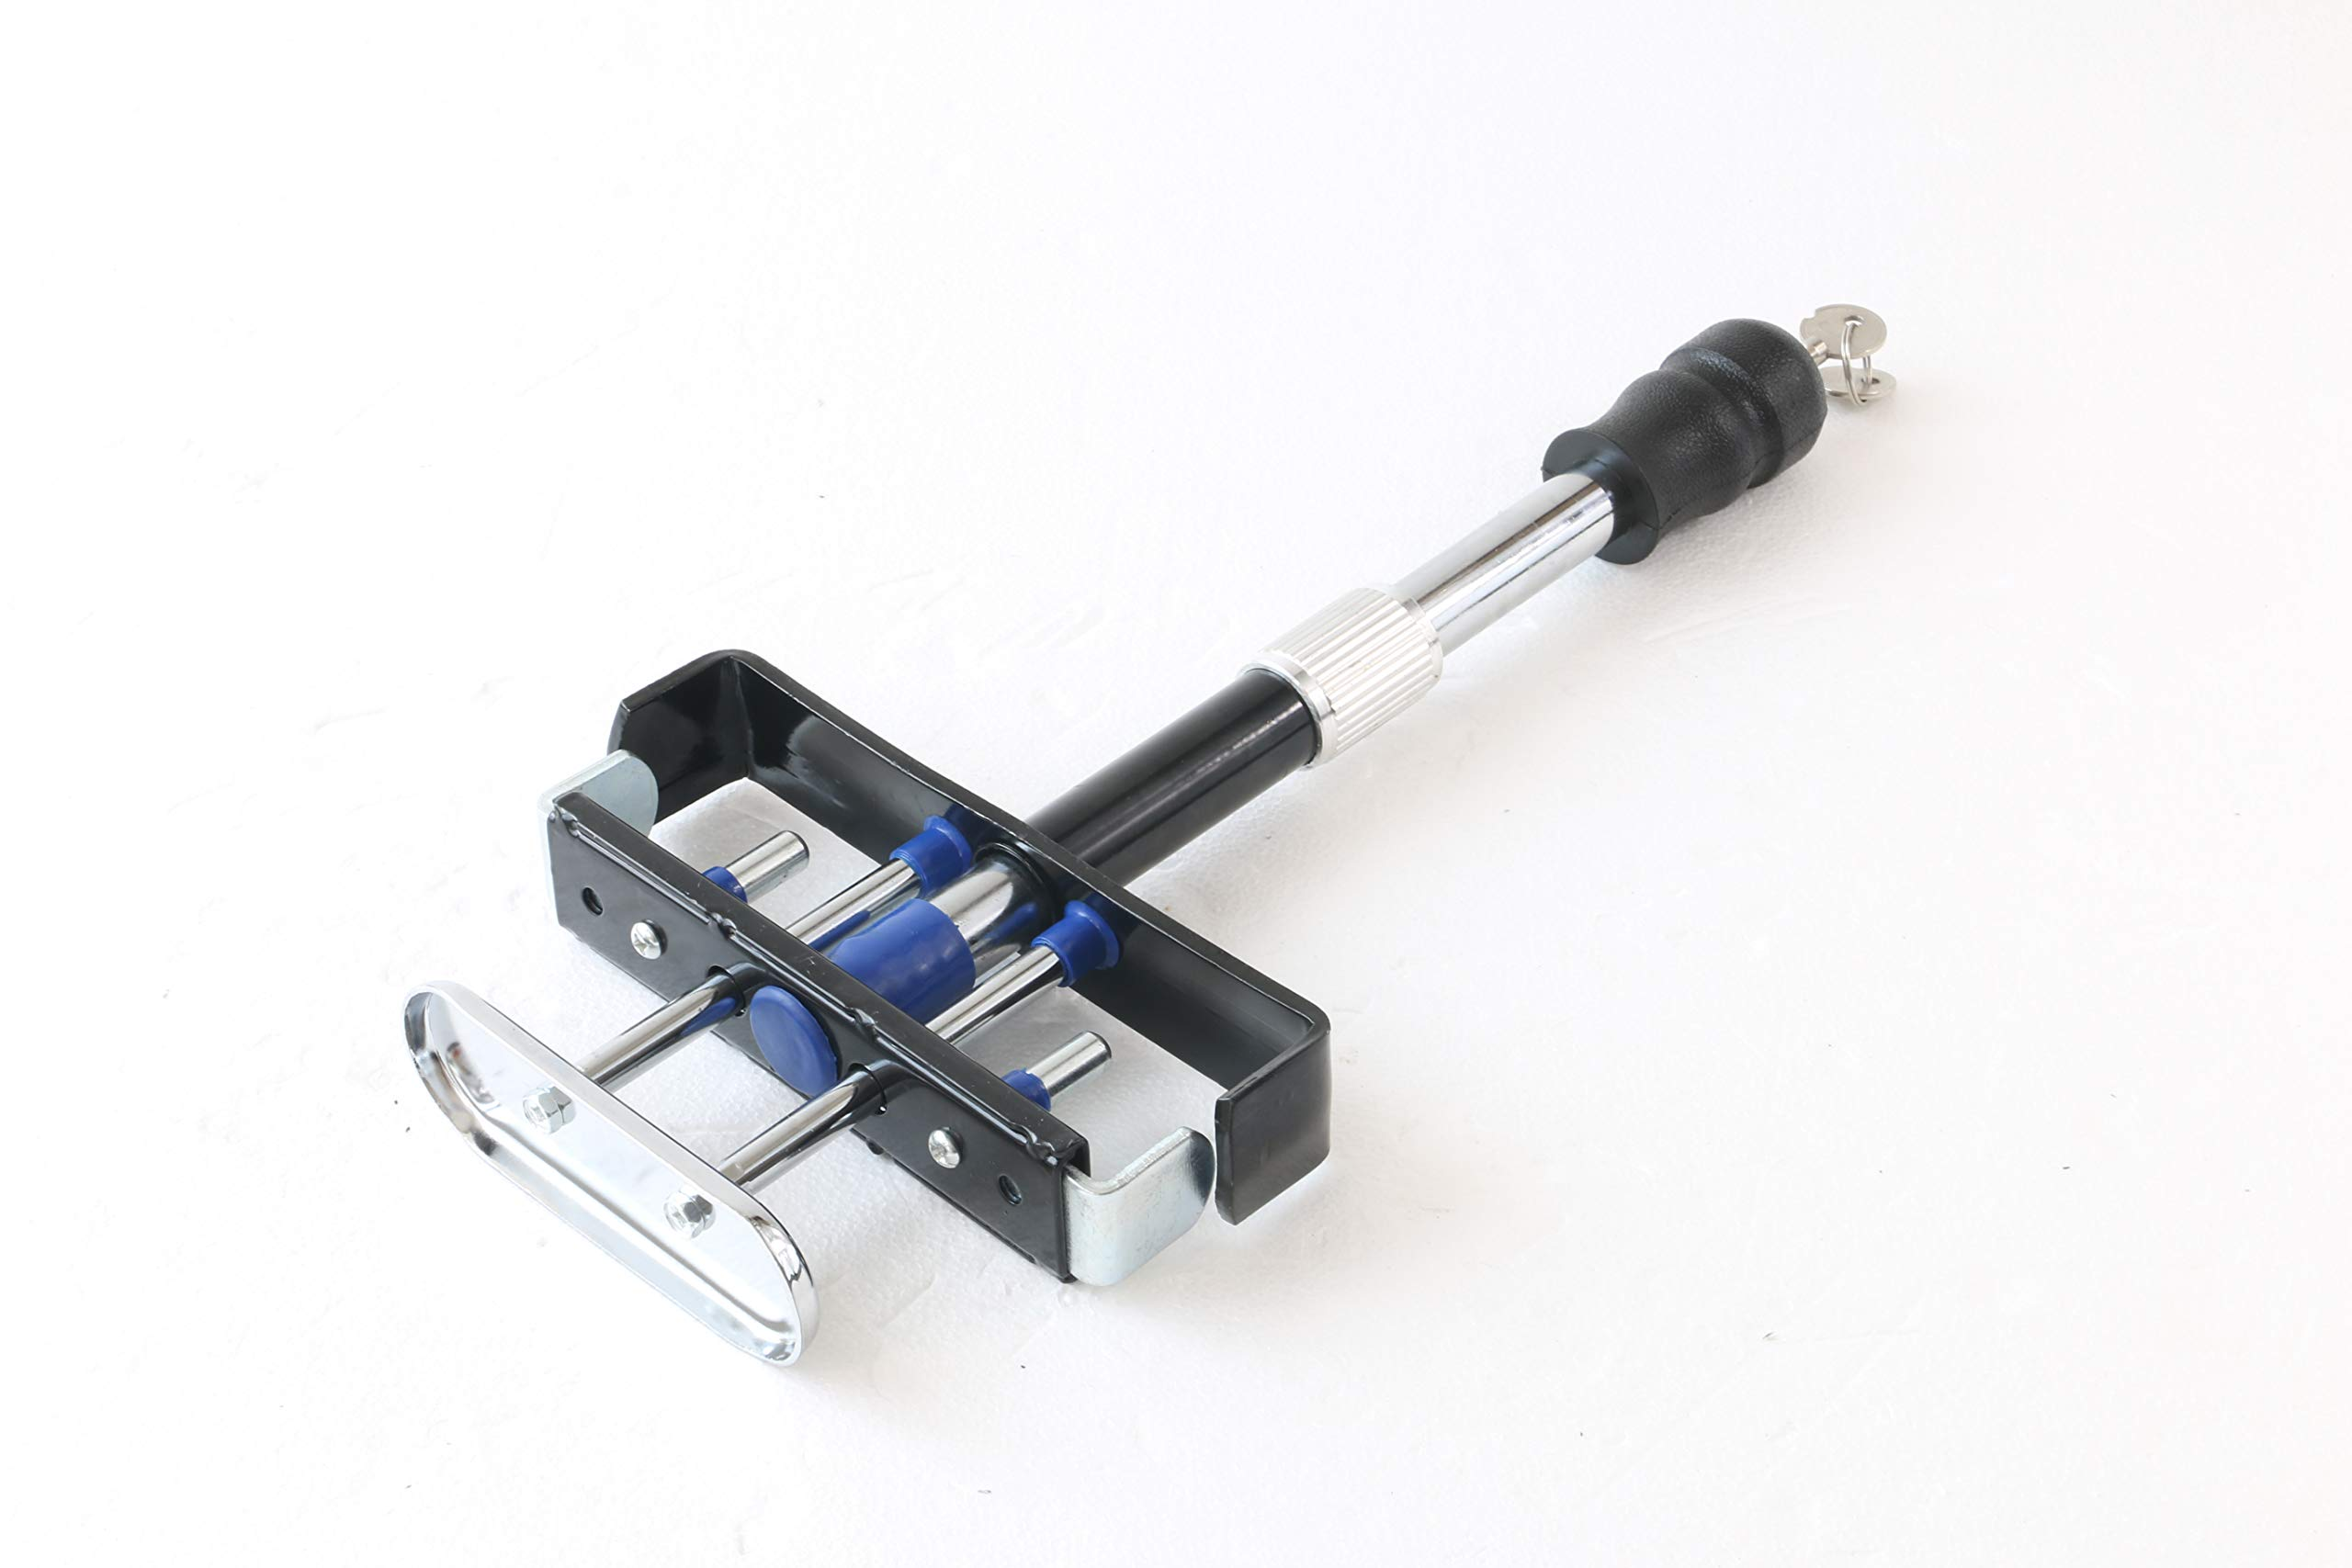 Motorhot New Adjustable Brake Clutch Pedal Clamp Lock High Security Vehicle Anti-Theft Device